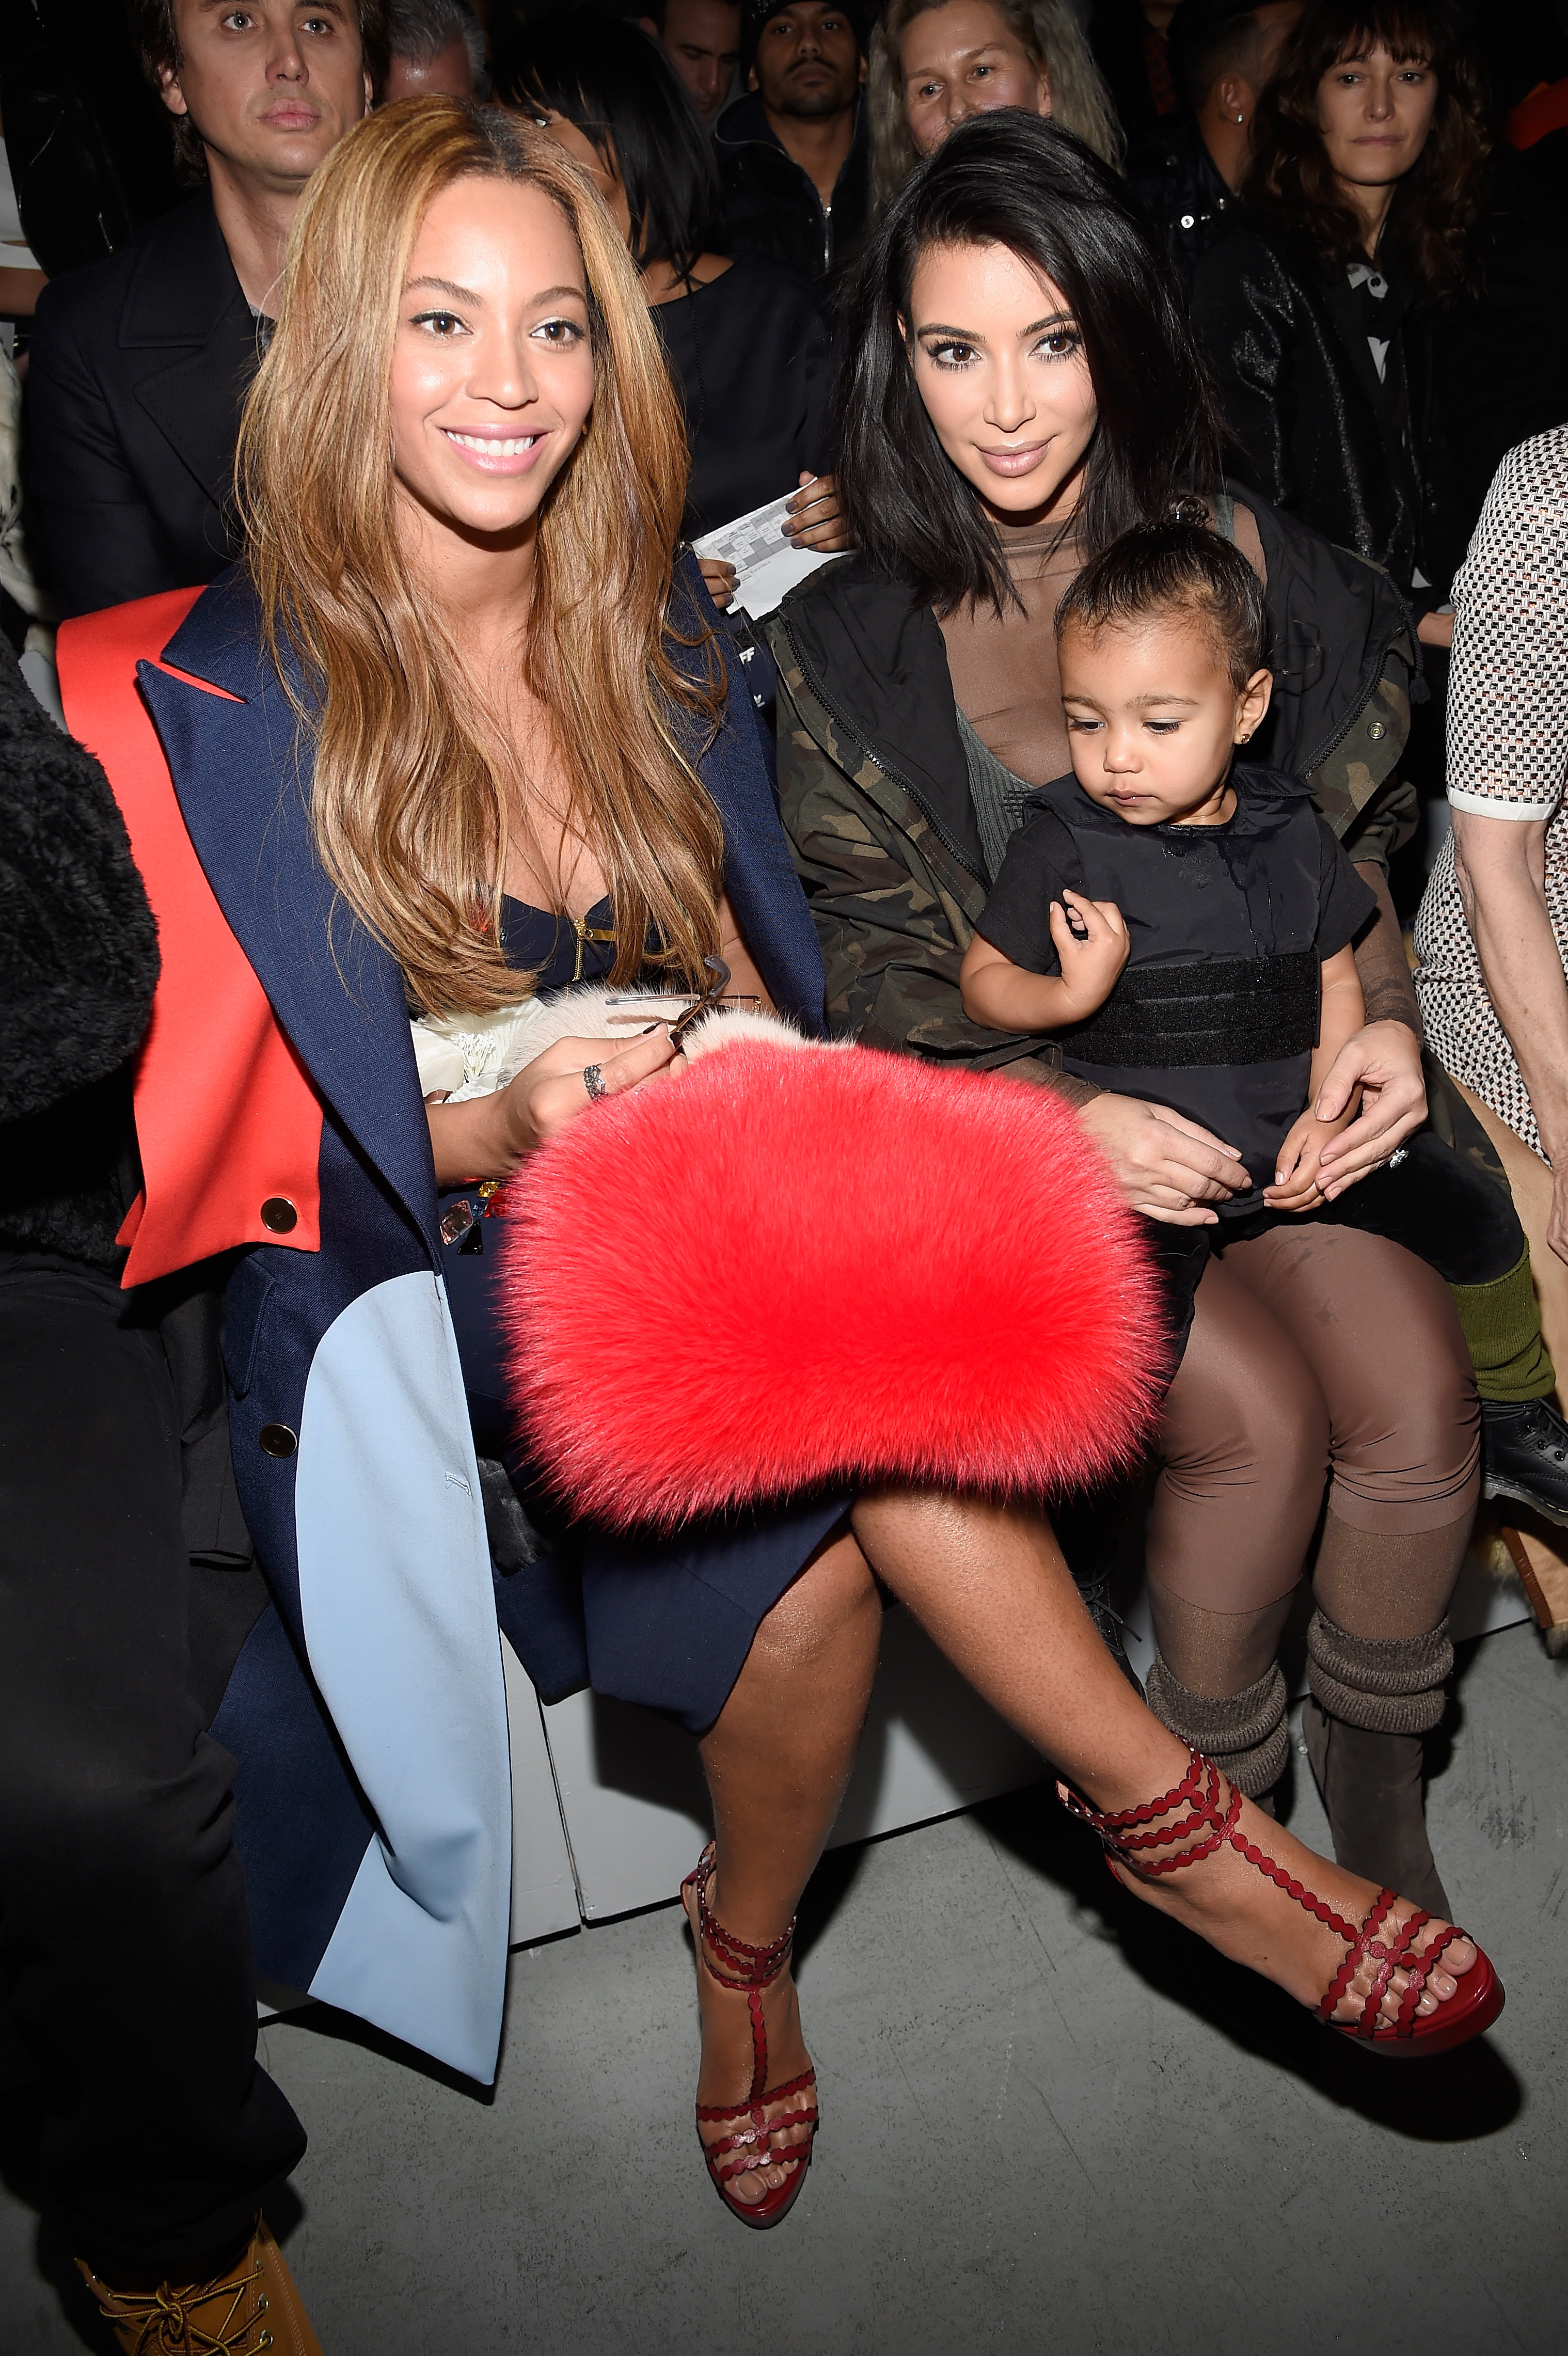 Beyonce, Kim Kardashian, and daughter North attend the adidas Originals x Kanye West YEEZY SEASON 1 fashion show during New York Fashion Week Fall 2015 at Skylight Clarkson Sq on February 12, 2015 in New York City.